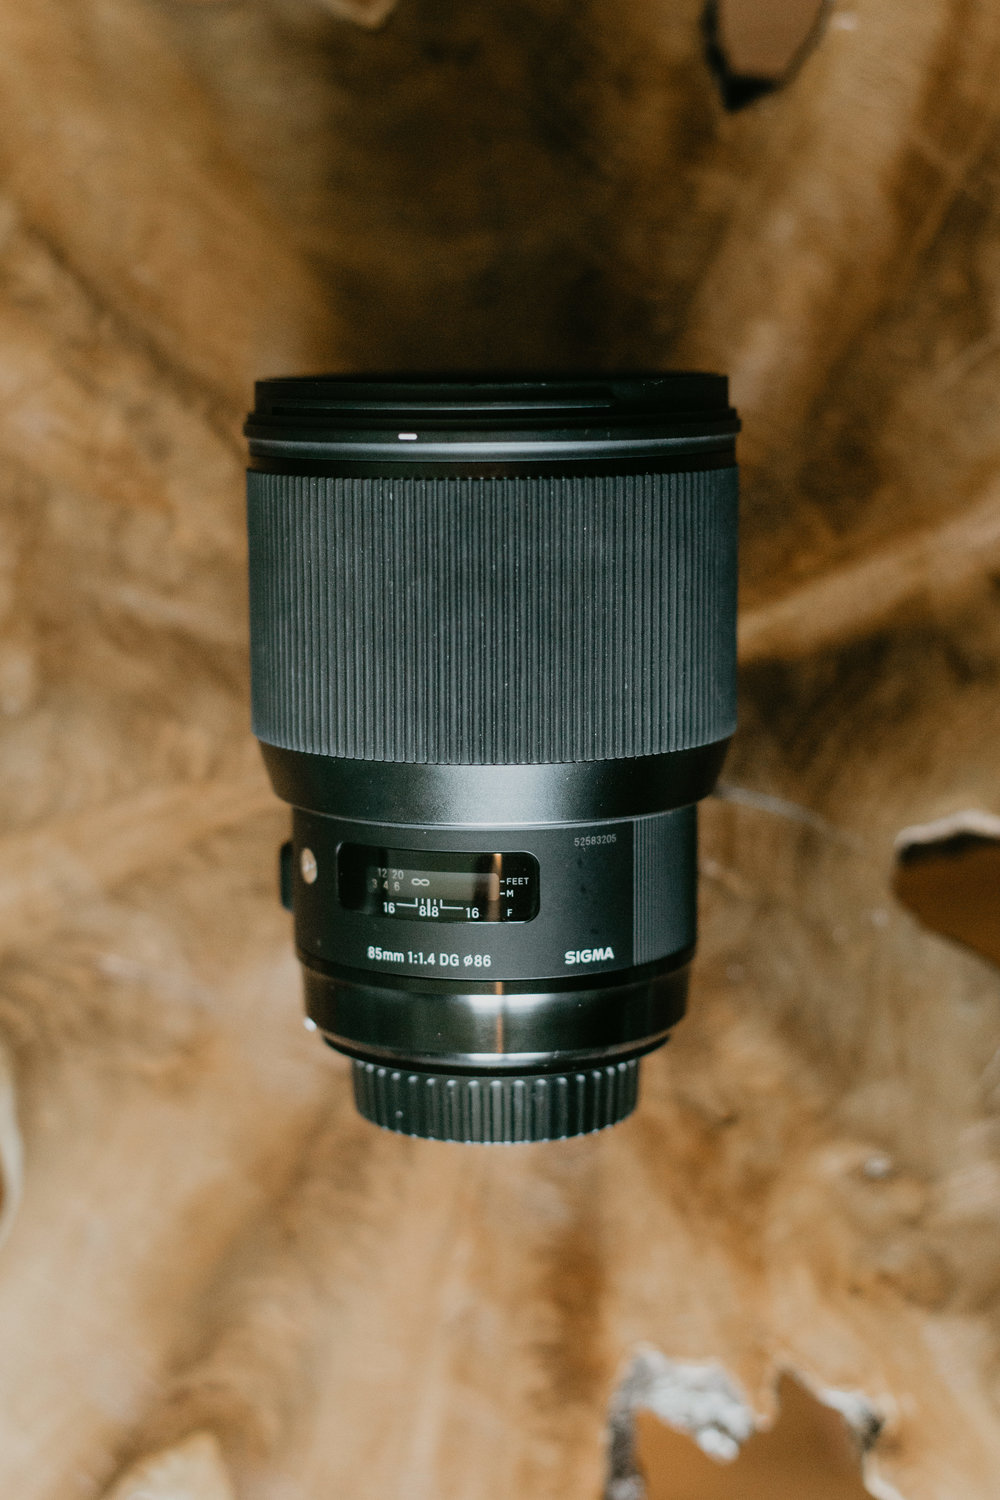 Nicole-daacke-photography-recommended gear-4.jpg